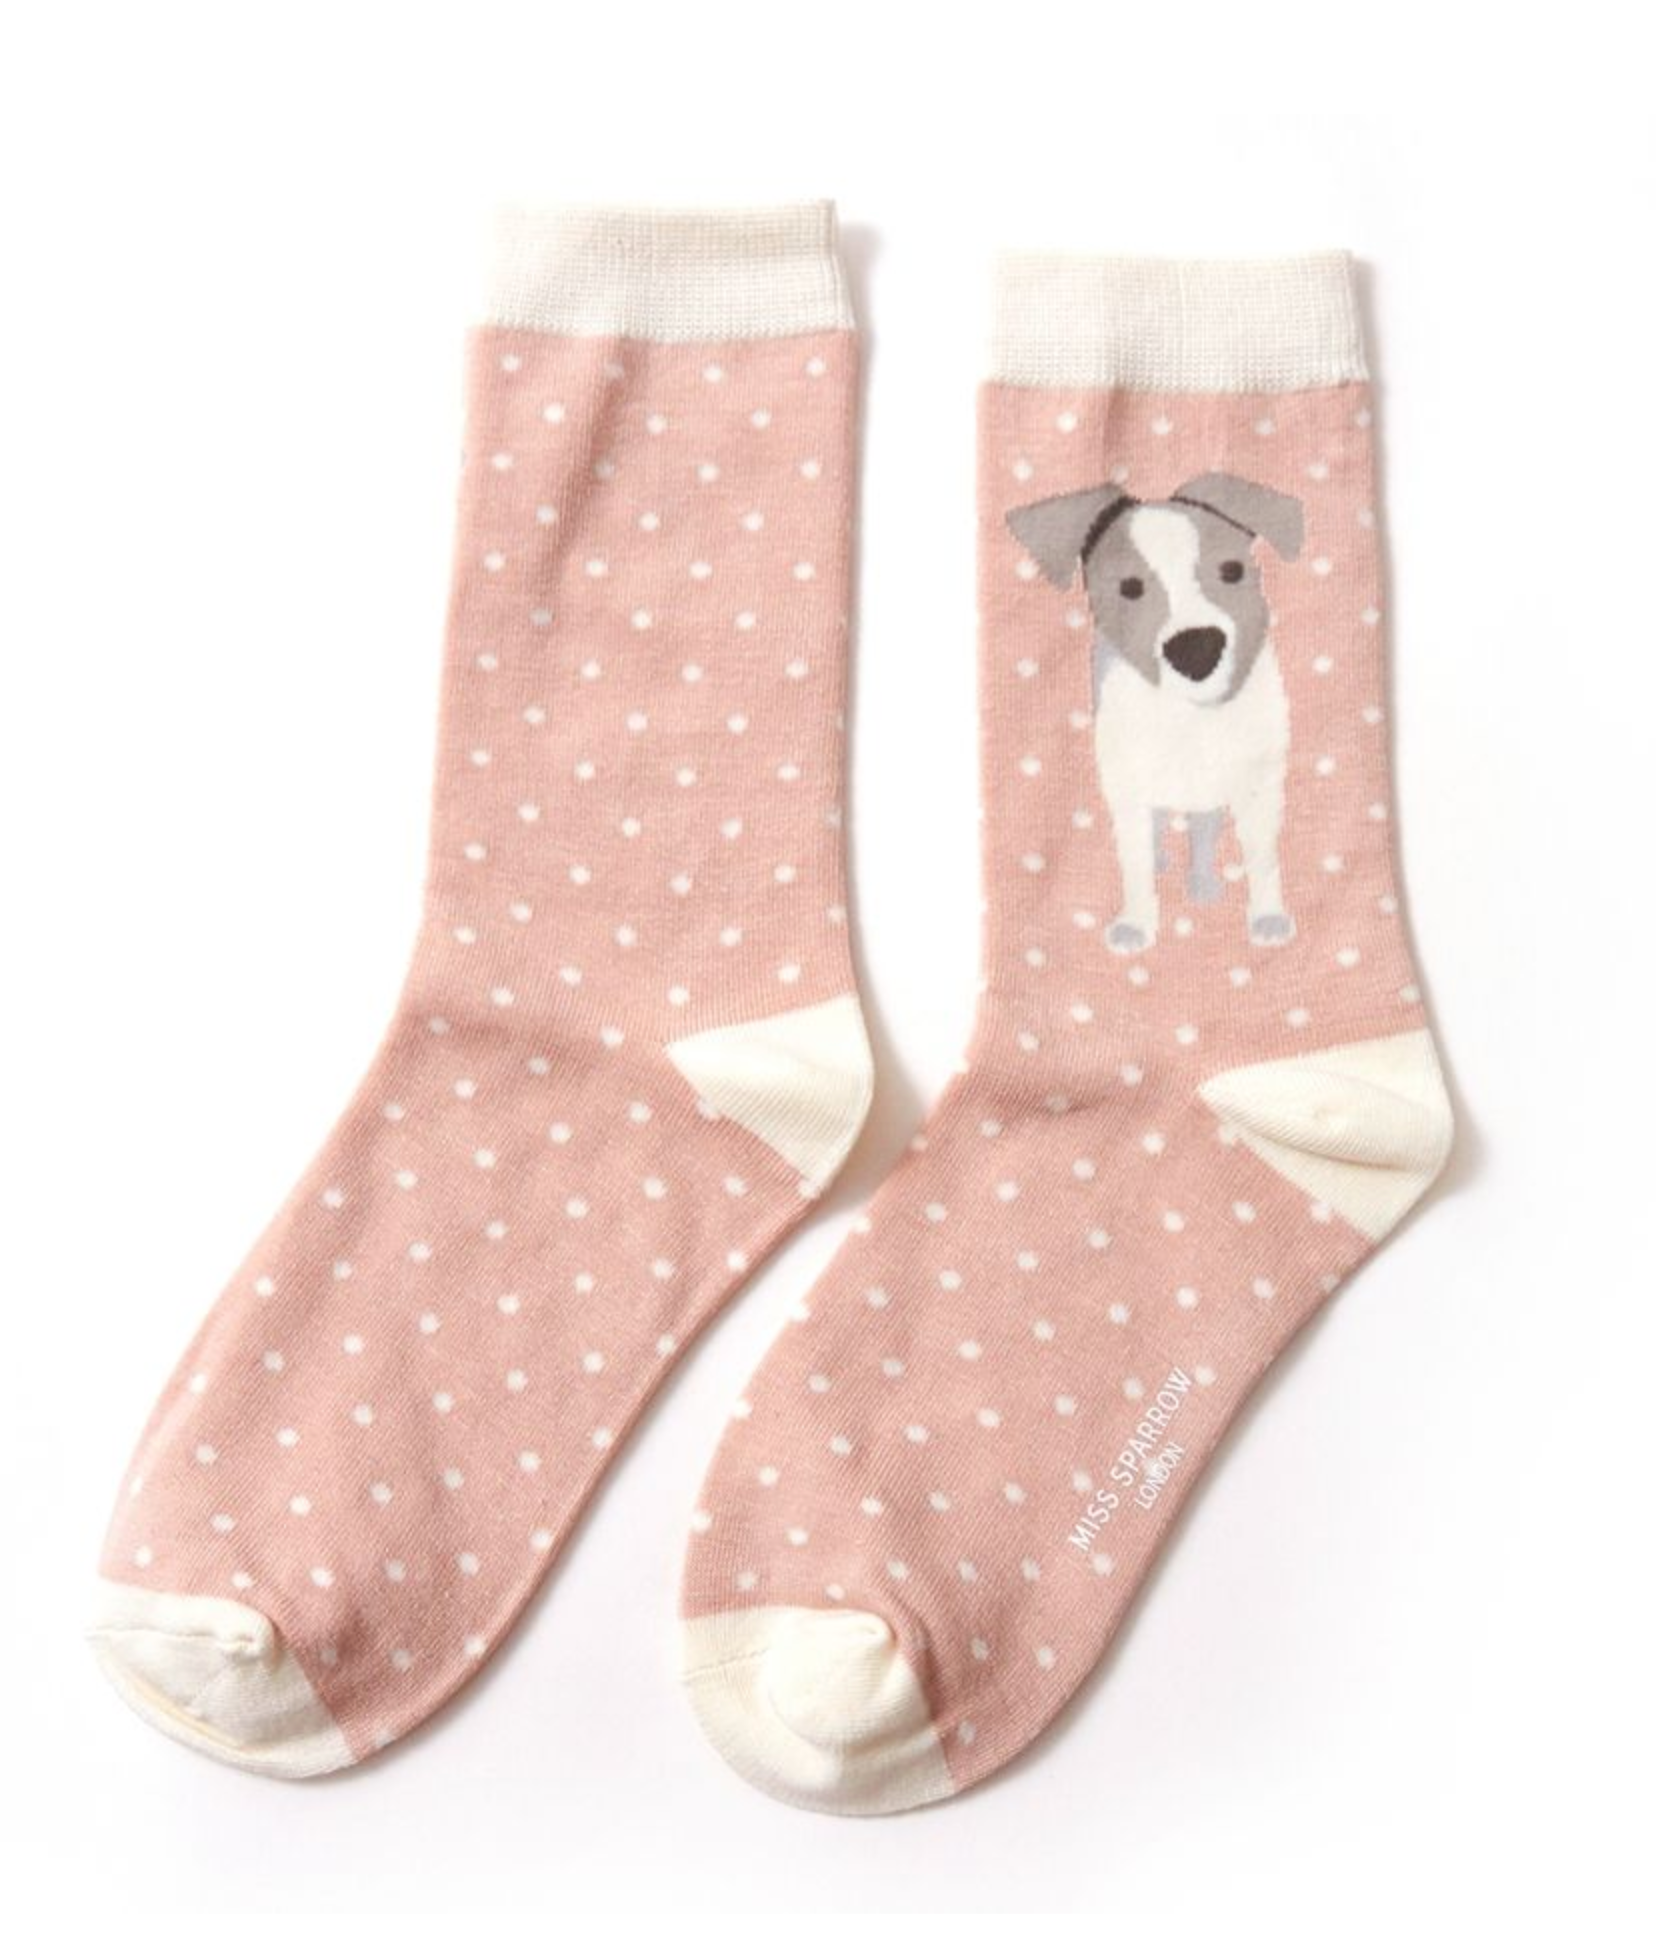 Miss Sparrow Bamboo Ladies Socks - Jack Russell Pup